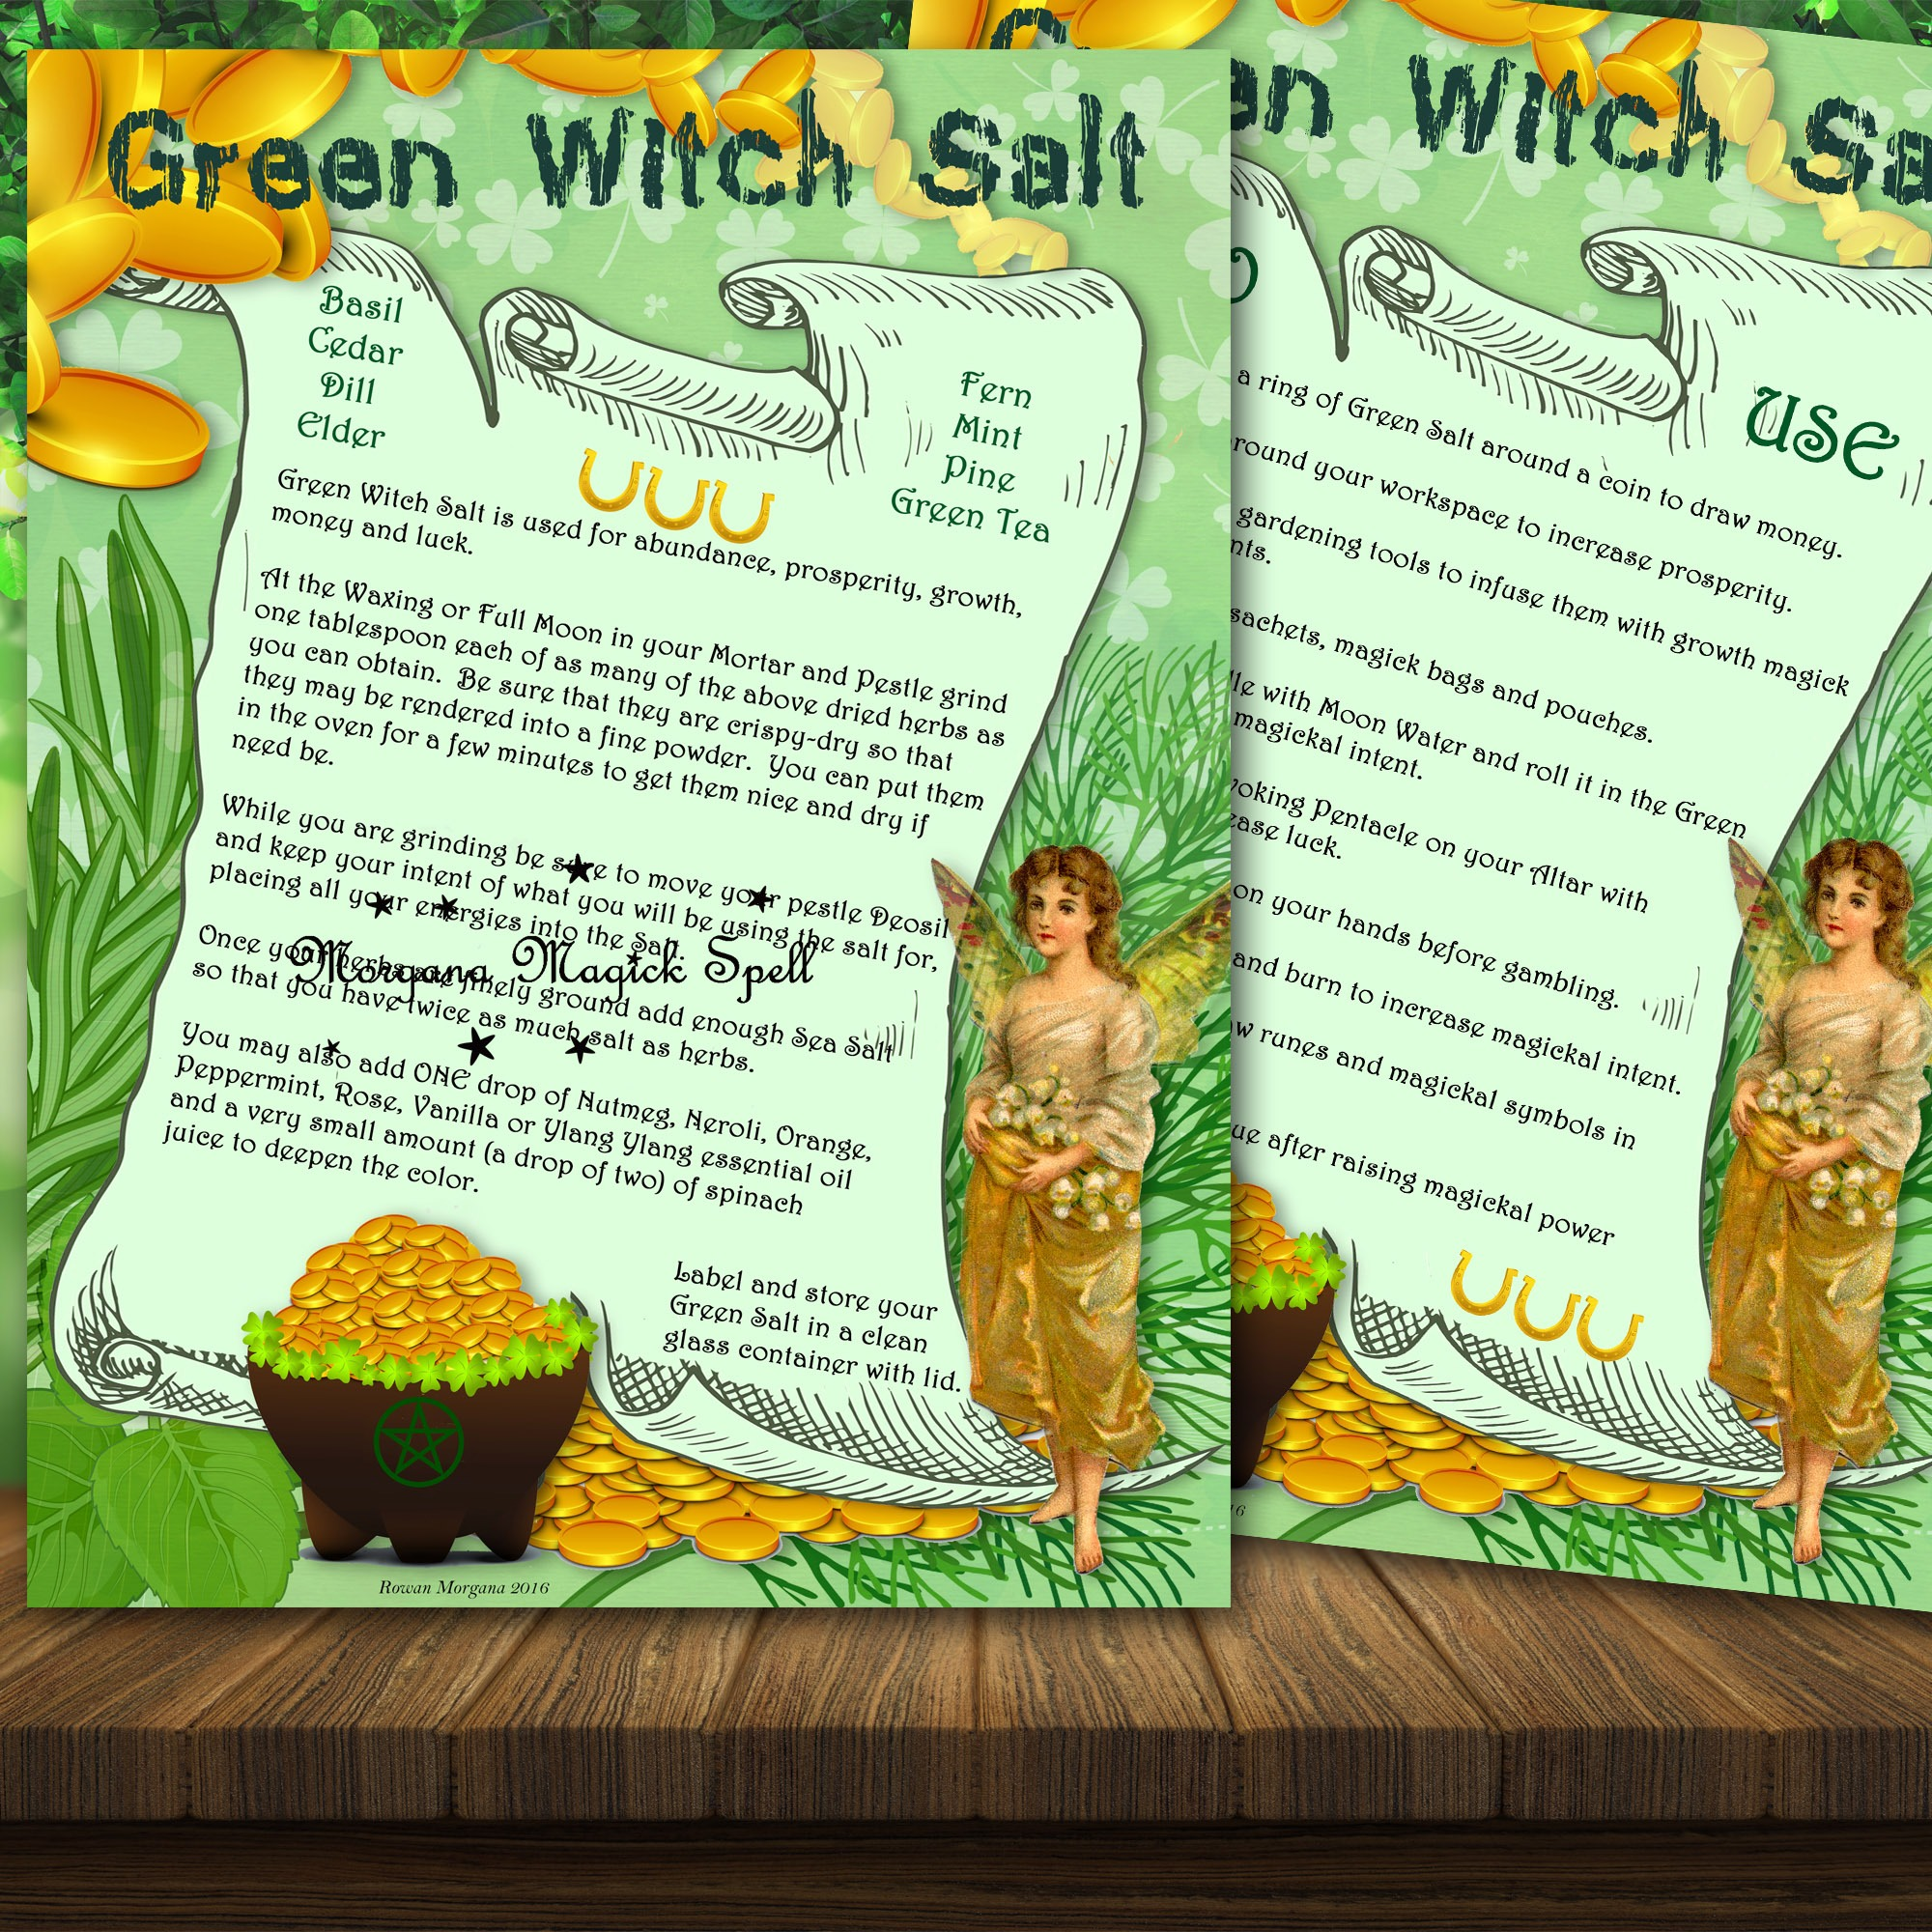 GREEN WITCH SALT RECIPE- For Prosperity, Money and Luck